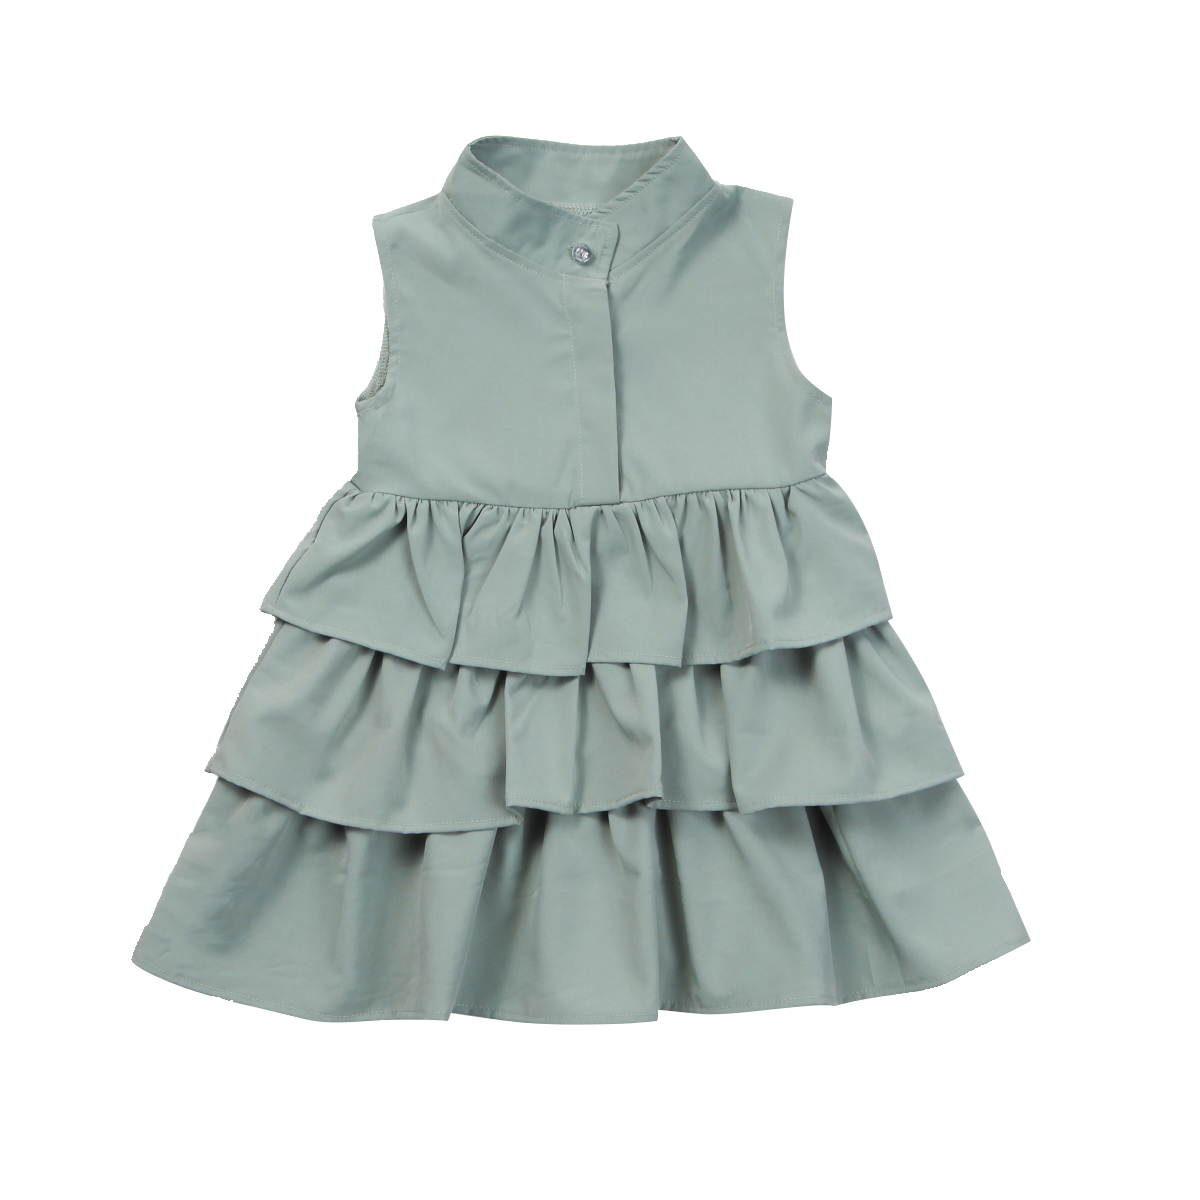 Newborn Kid Baby Girls Party Pageant Cake Ruffle Tutu Sleeveless Black Green Colors Bubble Clothes Dress mint green casual sleeveless hooded top